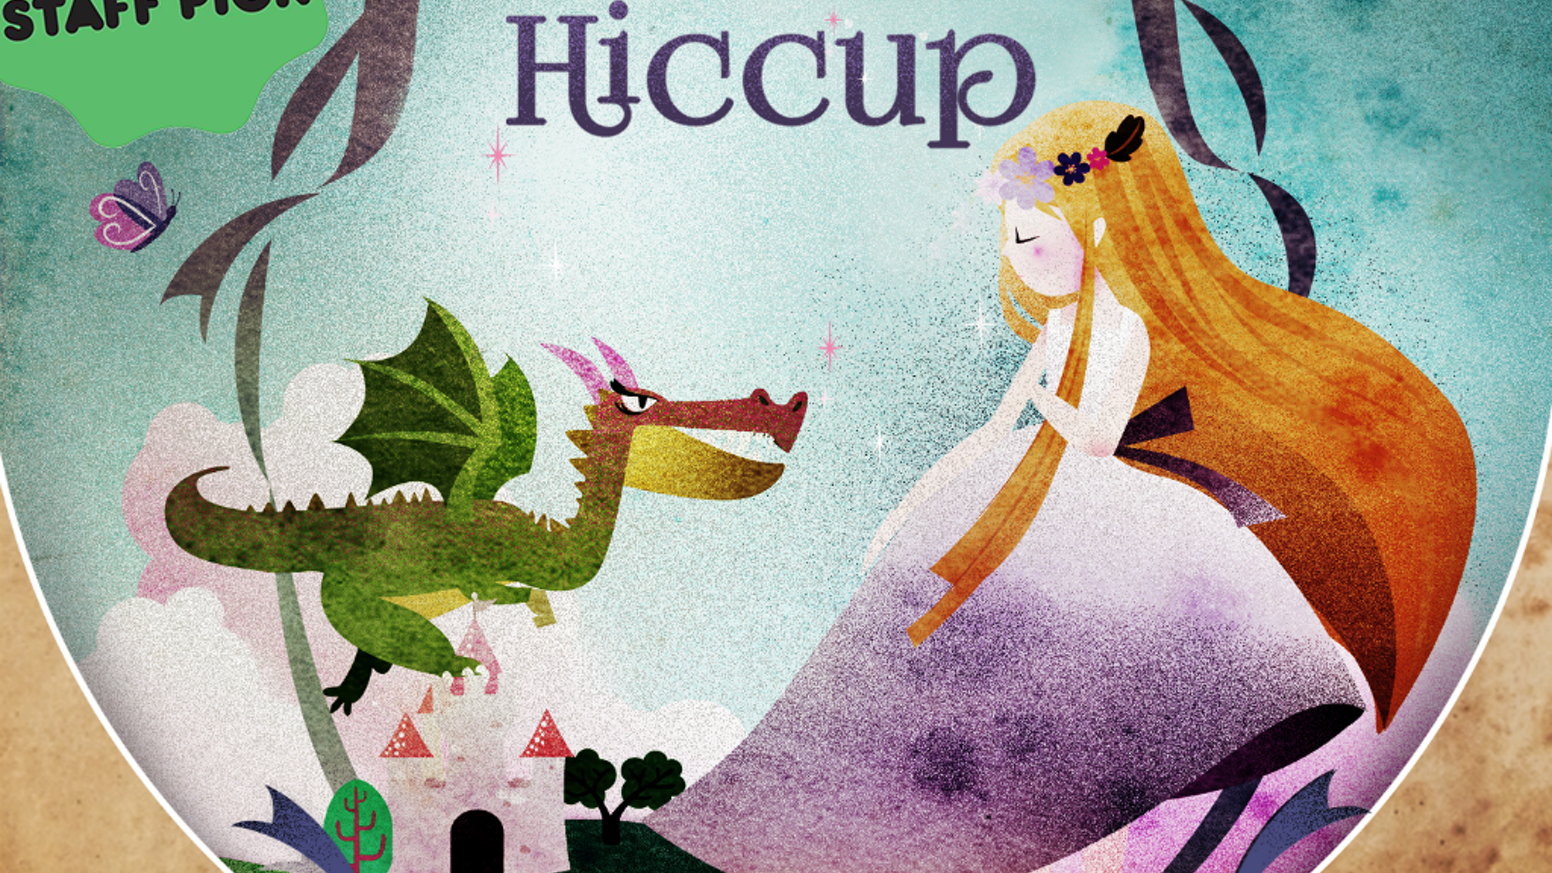 Princess hiccup an illustrated story of laughter hiccups by matt a whimsical fairy tale told in the tradition of nursery rhymes filled with laughter fandeluxe Images